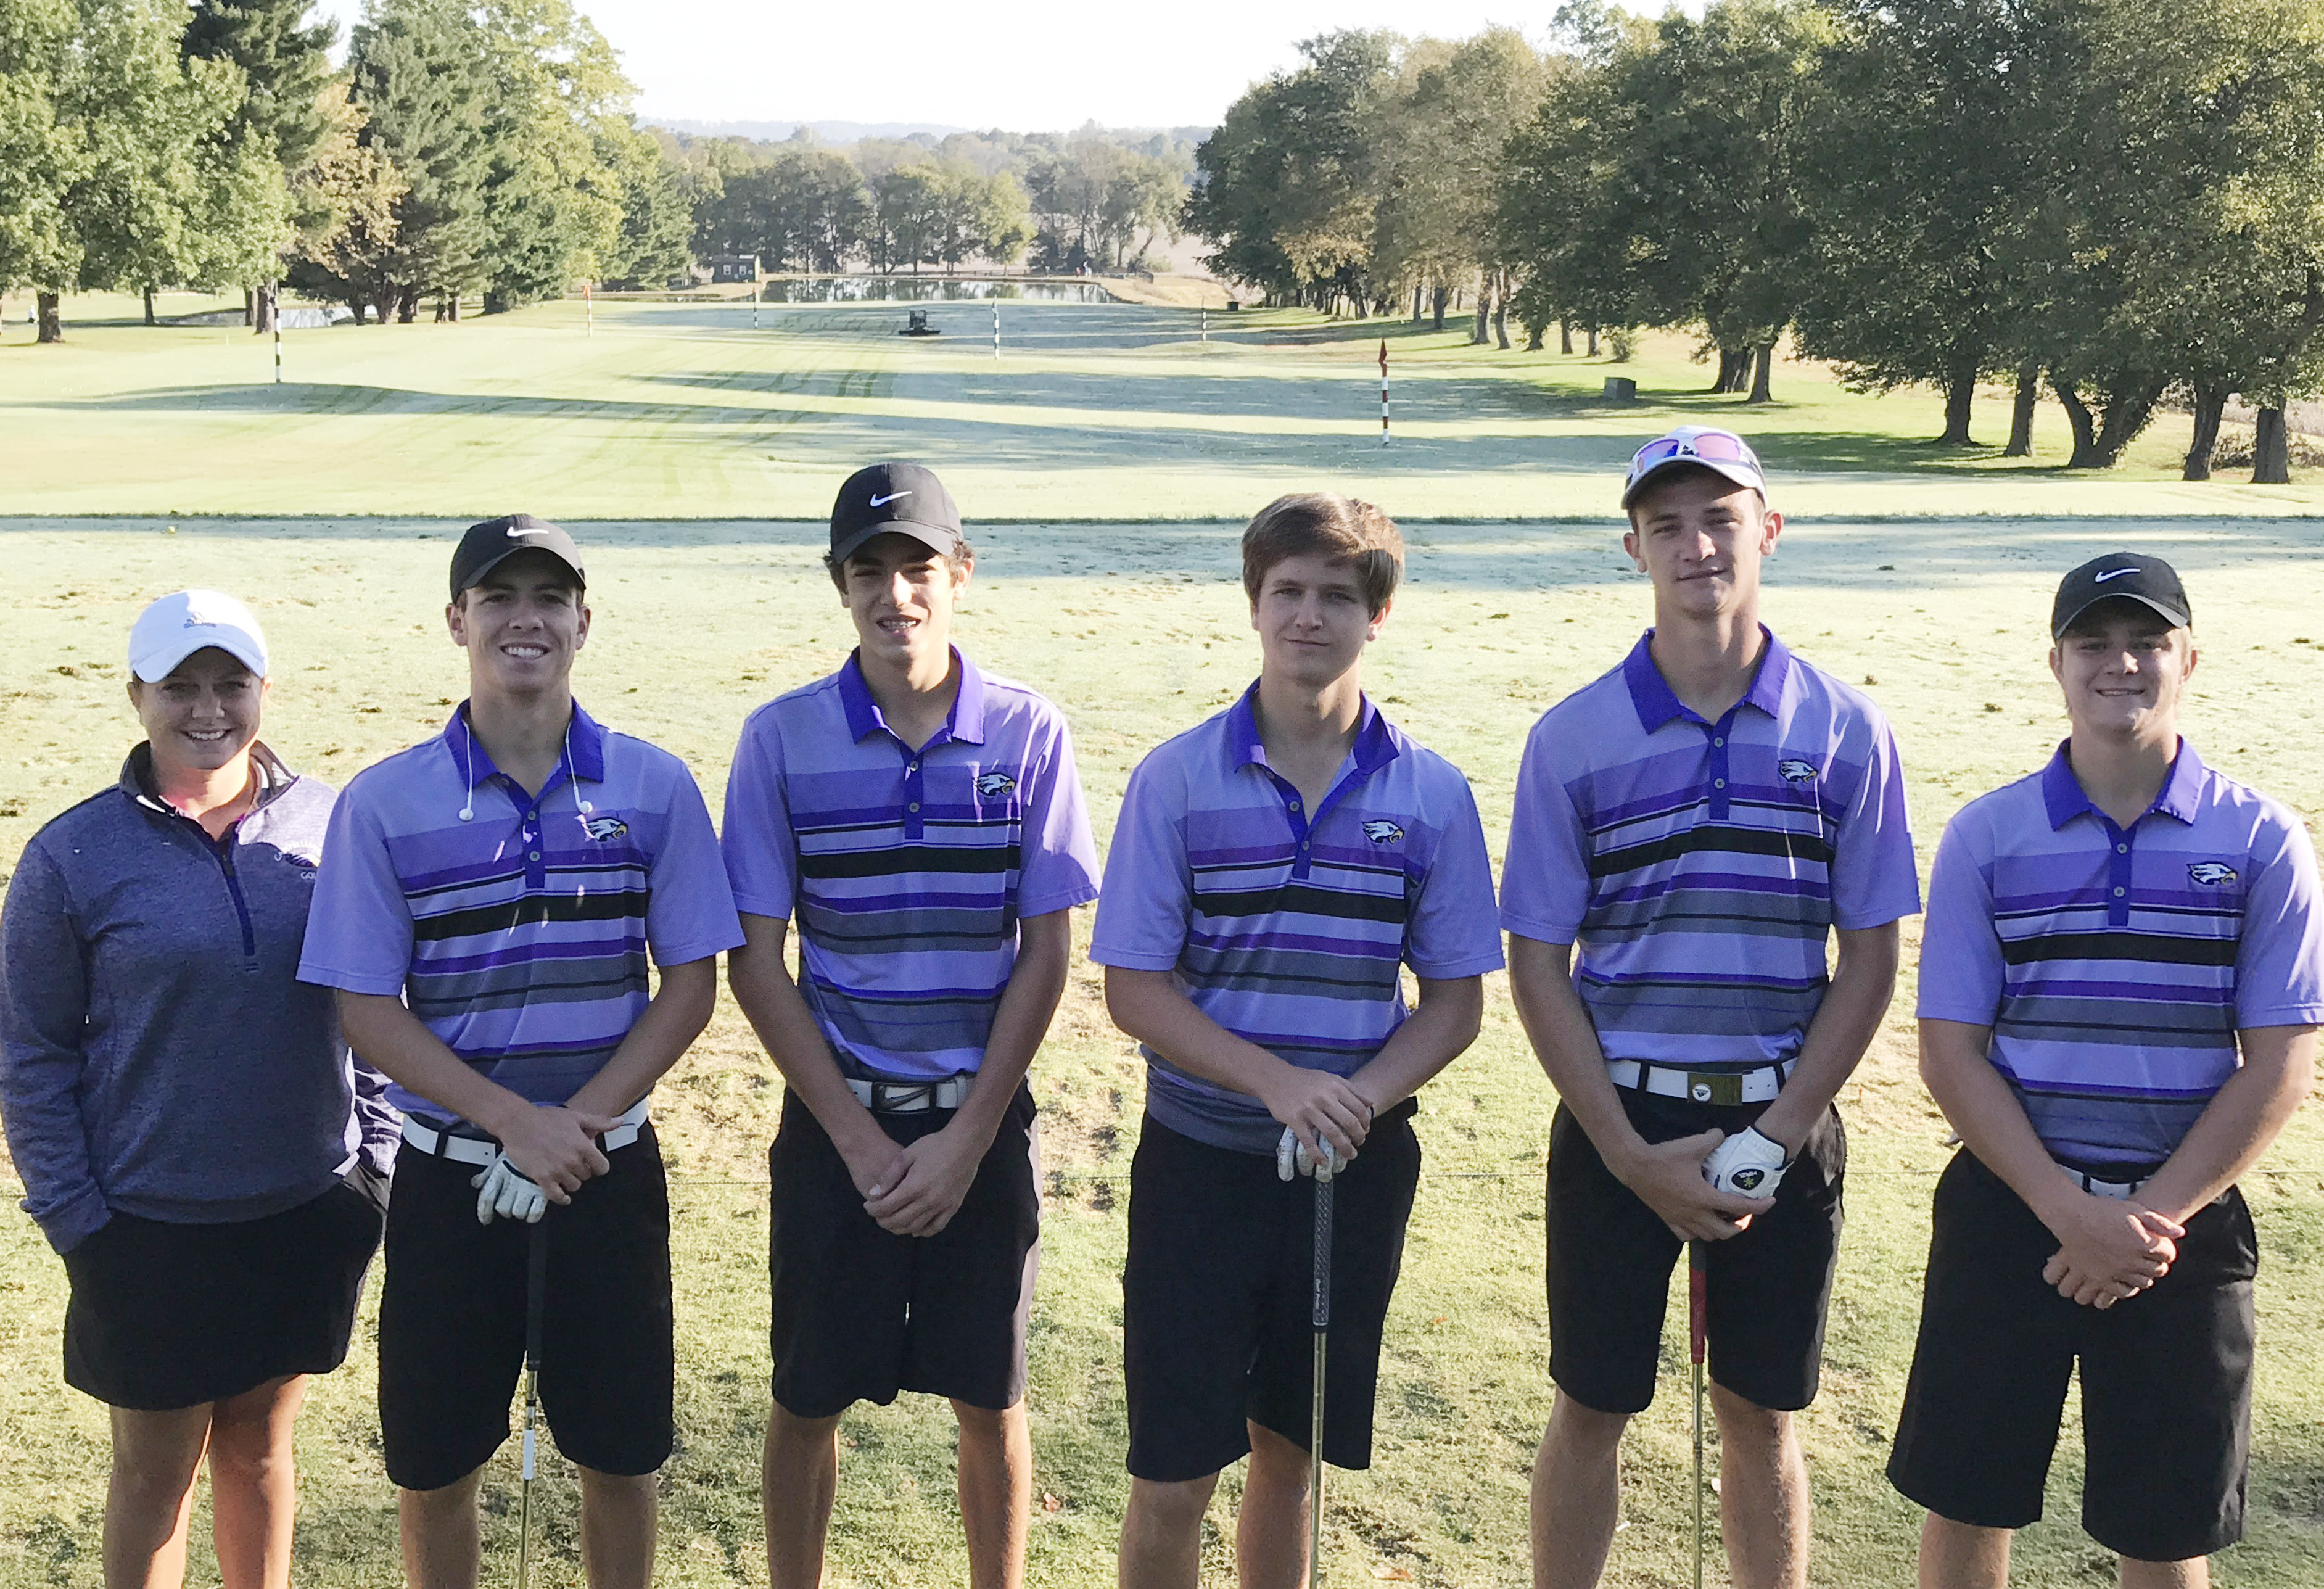 Campbellsville High School boys' golf team is the ninth best team in the state. The team competed in the Kentucky High School Athletic Association state tournament at Bowling Green Country Club on Tuesday, Oct. 3, and Wednesday, Oct. 4. From left are coach Cassidy Decker, junior Layton Hord, freshman Kameron Smith, junior Myles Murrell and seniors Connor Wilson and Alex Doss.